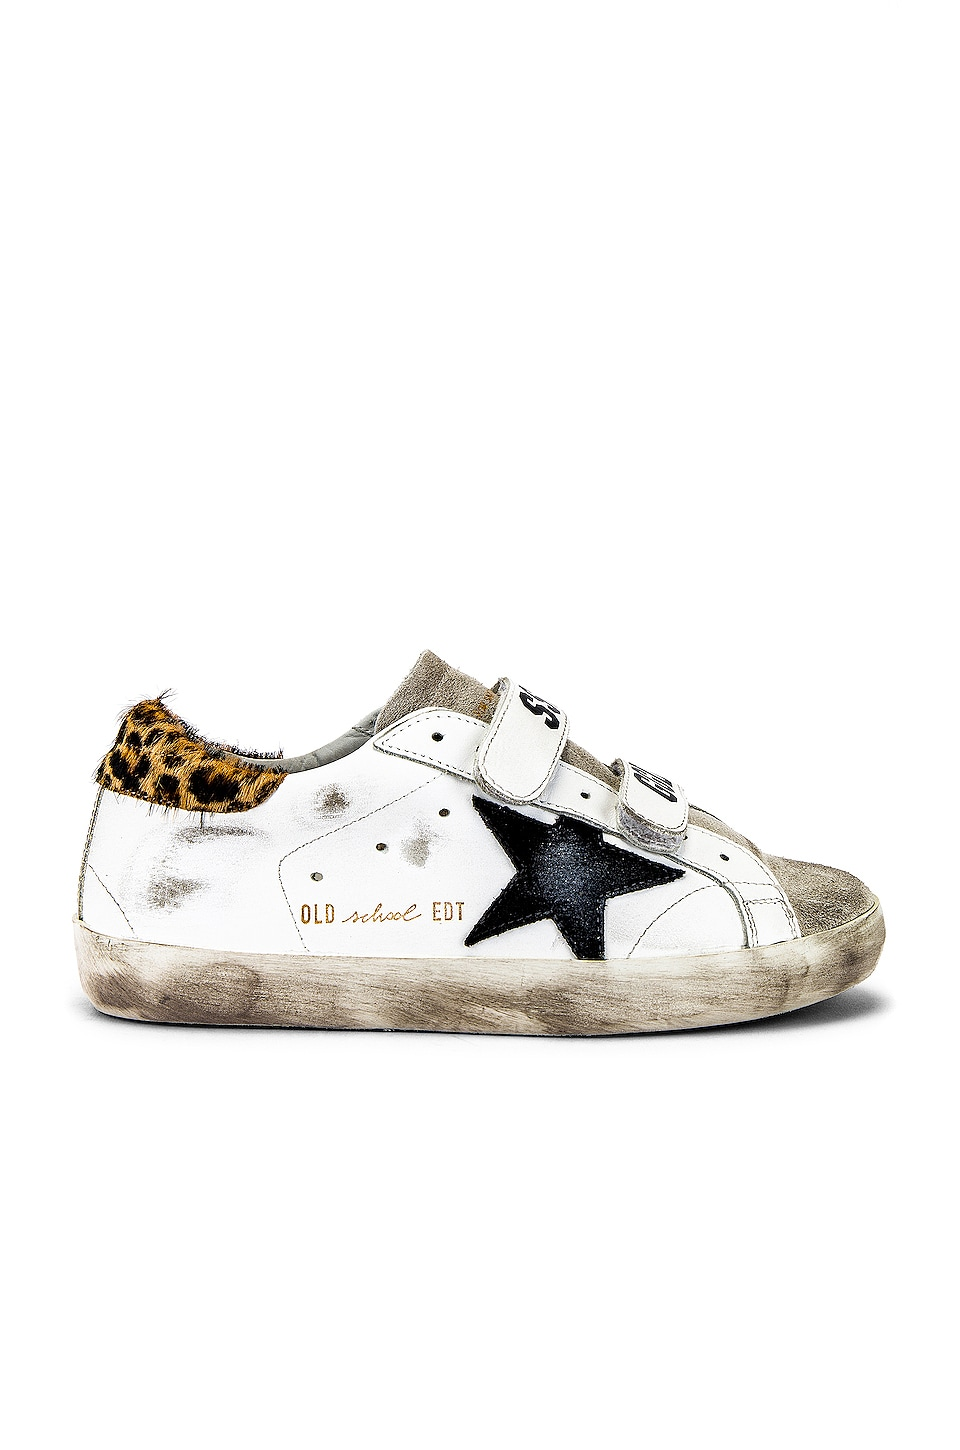 Golden Goose Old School Sneakers in White Leather & Leopard Pony